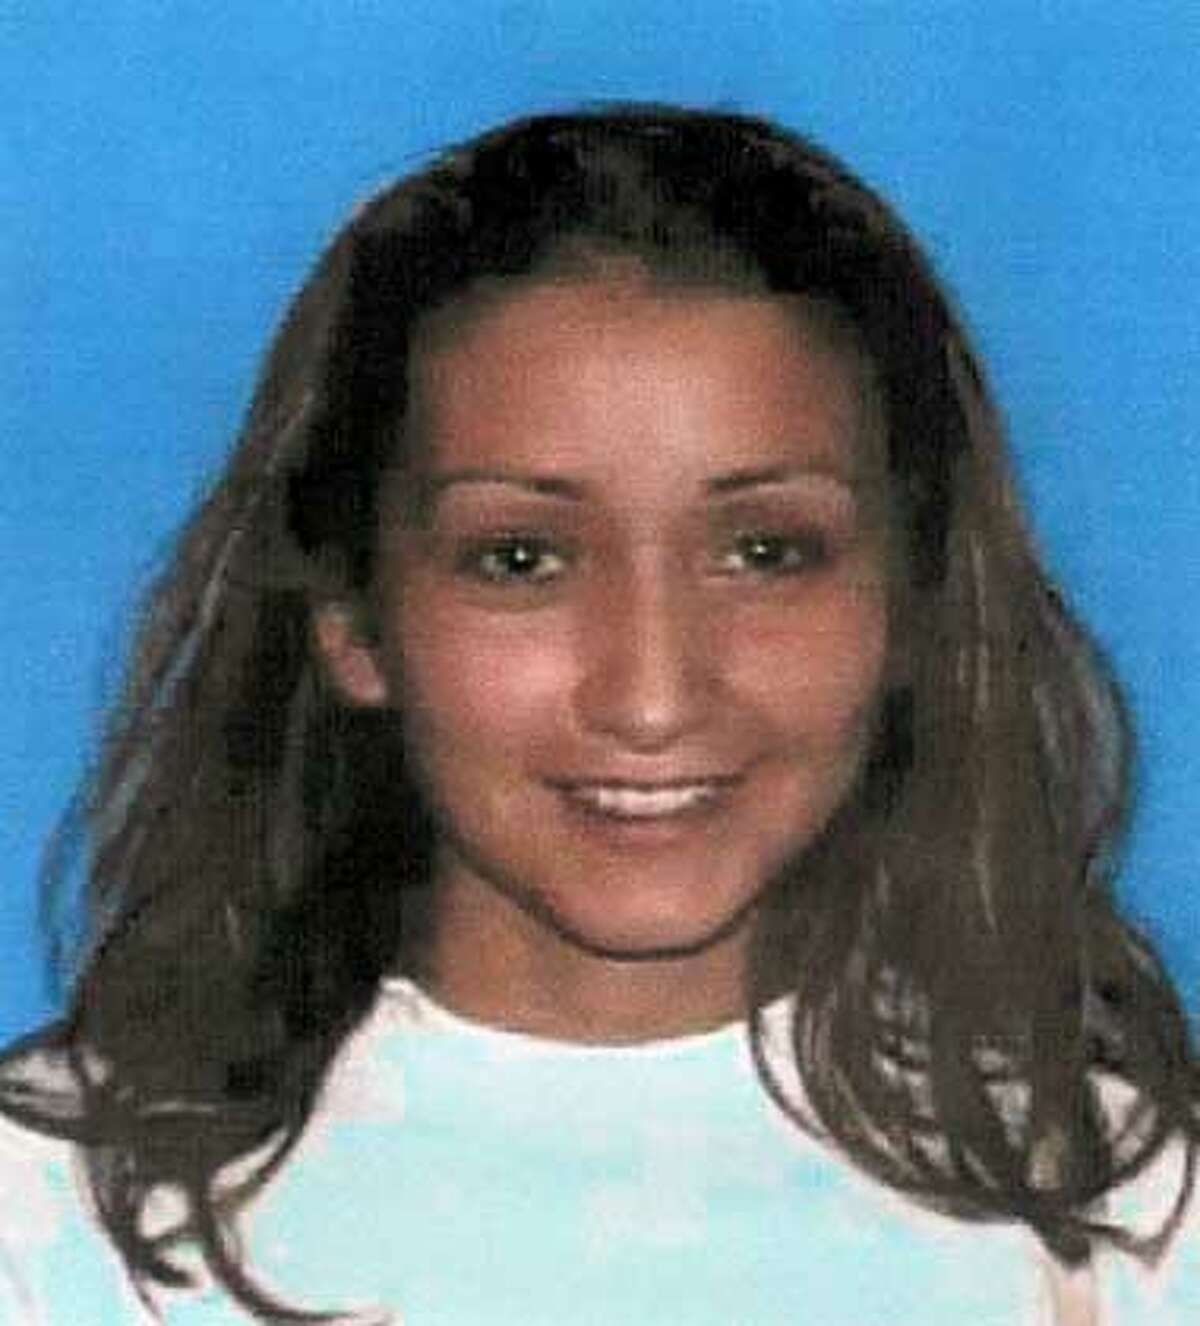 CHASEDIE24.JPG Mug shot of suspect Laura Medina, 21 / HO Ran on: 06-24-2004 Michelle Dickerson, 18, died in a crash after the car she was in was chased down an East Bay freeway. Ran on: 06-24-2004 Michelle Dickerson, 18, died in a crash after the car she was in was chased down an East Bay freeway. Ran on: 01-30-2007 Laura Medina